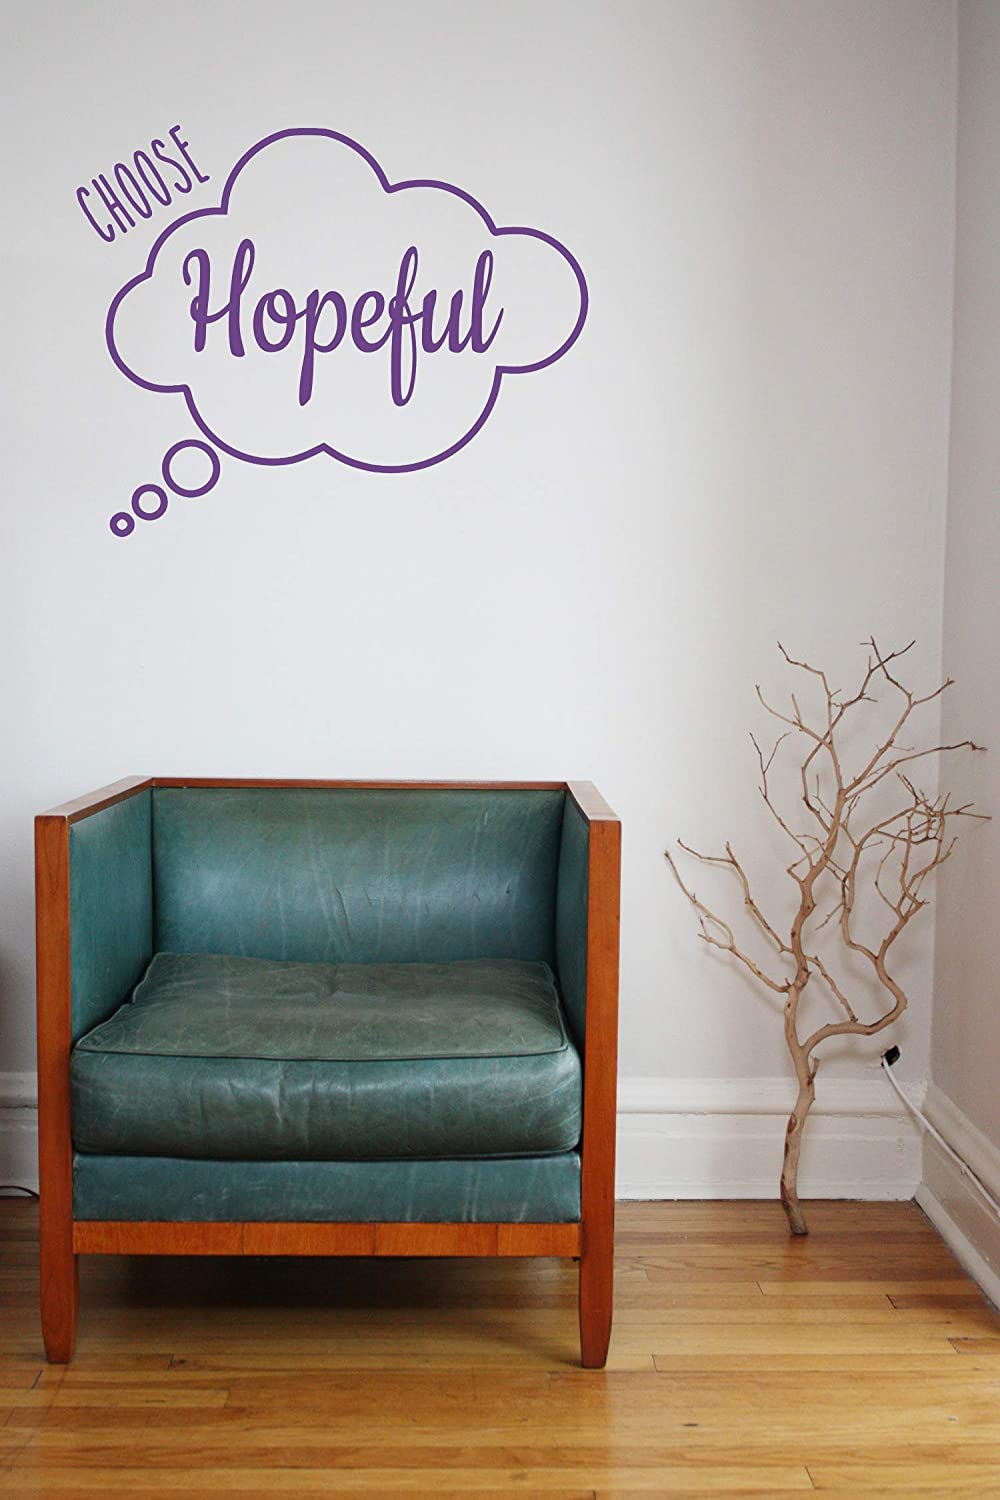 'Choose Hopeful' Quote vinyl Decal Motivational Sticker. Under blast Cheap mail order specialty store sales